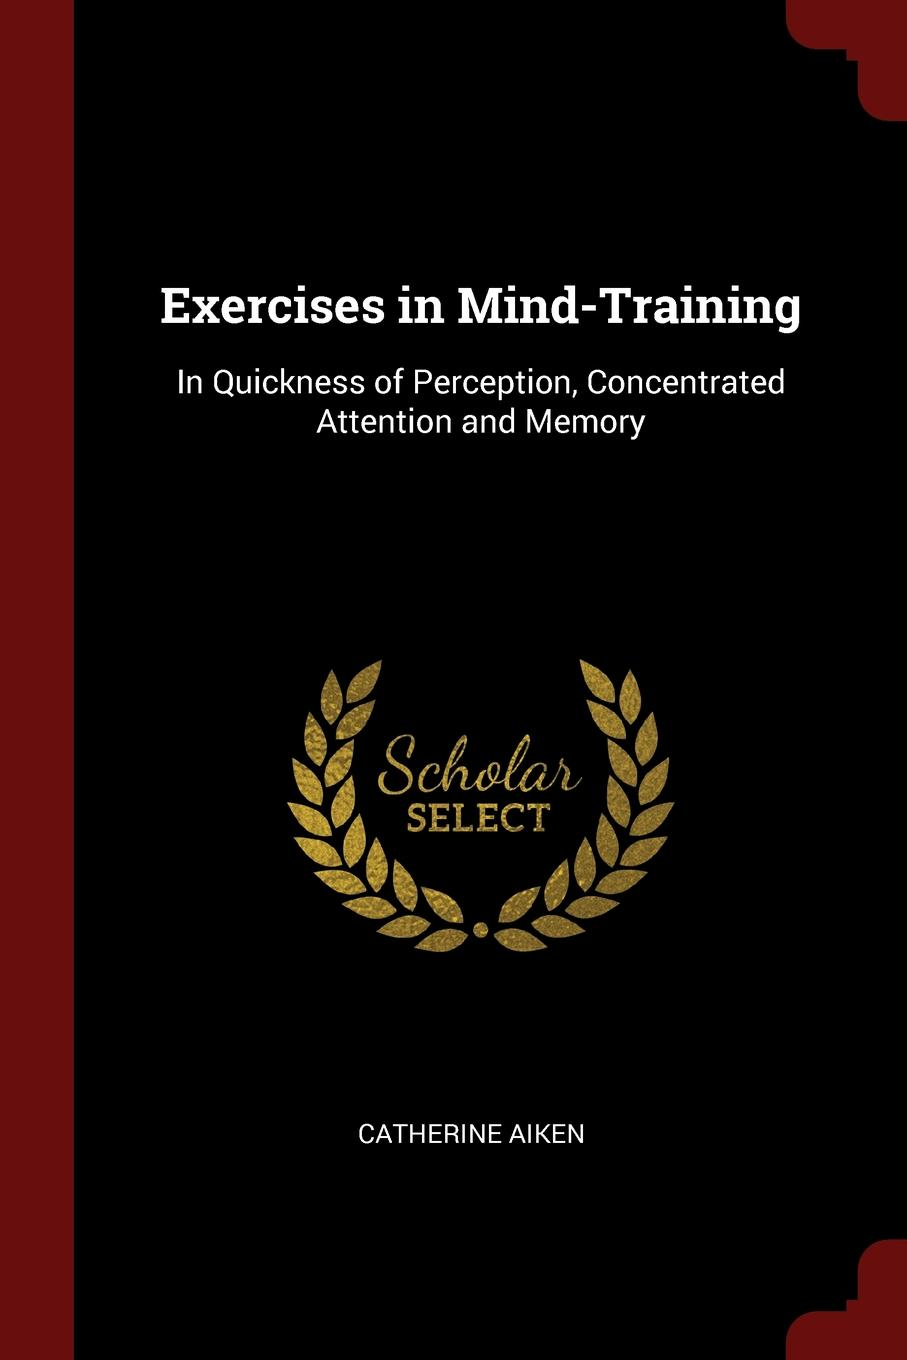 Exercises in Mind-Training. In Quickness of Perception, Concentrated Attention and Memory. Catherine Aiken